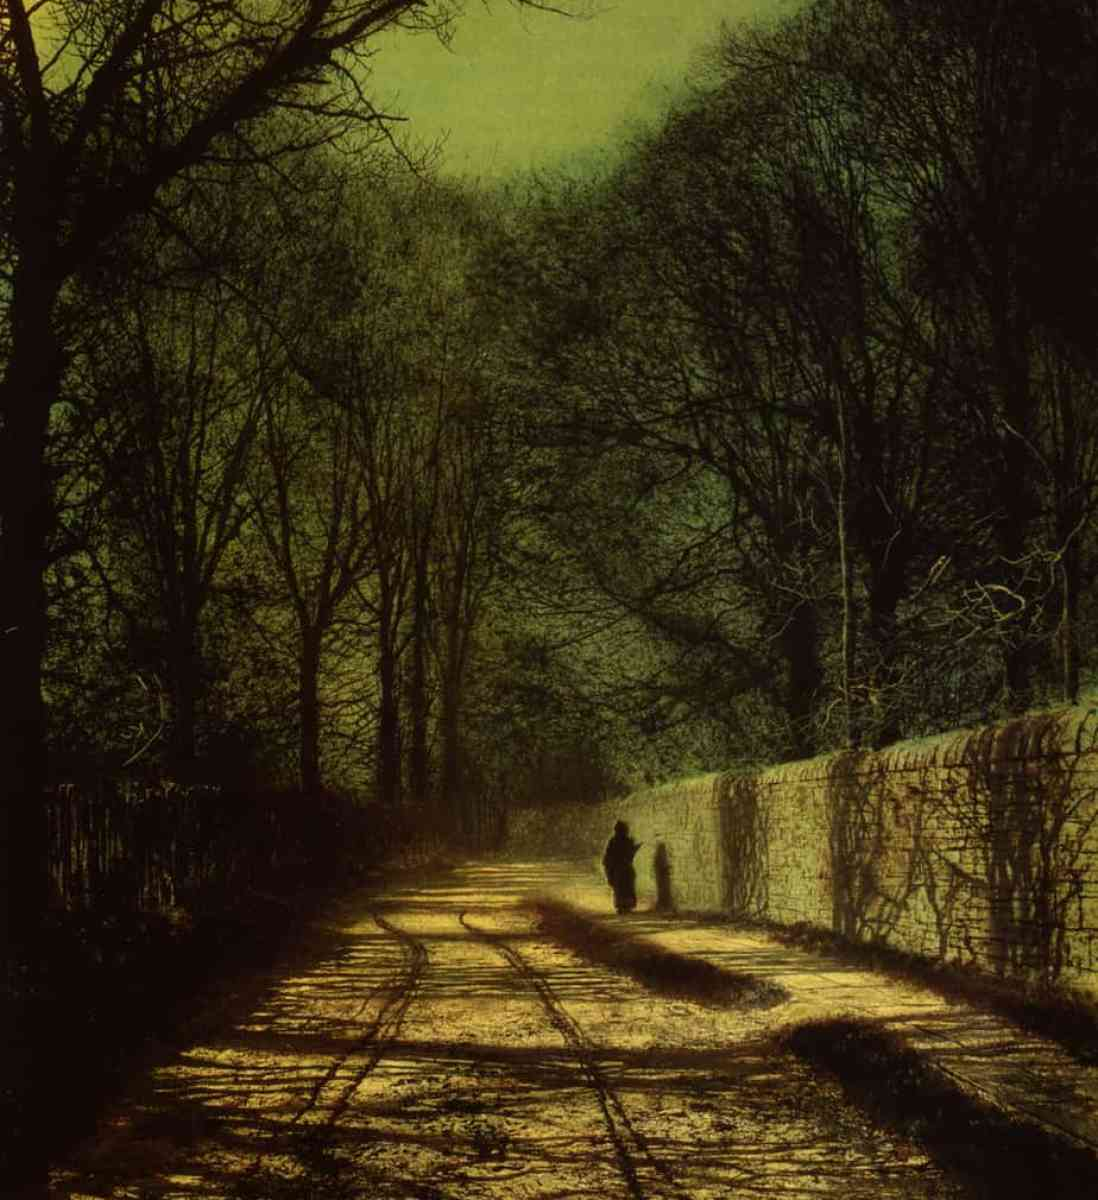 Atkinson Grimshaw - Tree Shadows on the Park Wall, Roundhay Park, Leeds